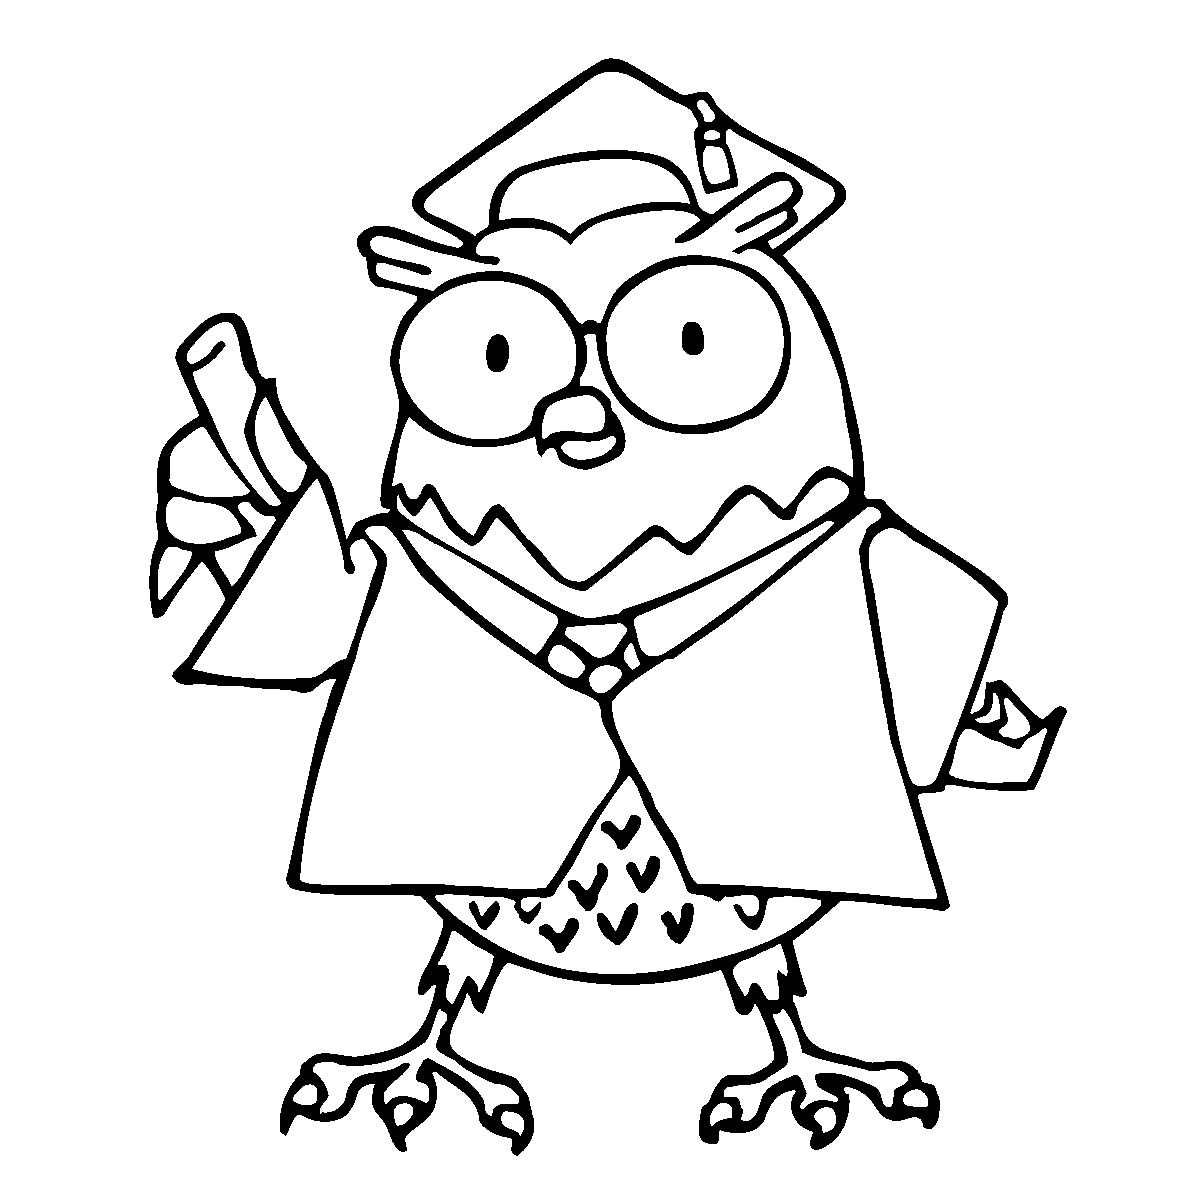 teacher owl clipart black and white 20 free Cliparts ...